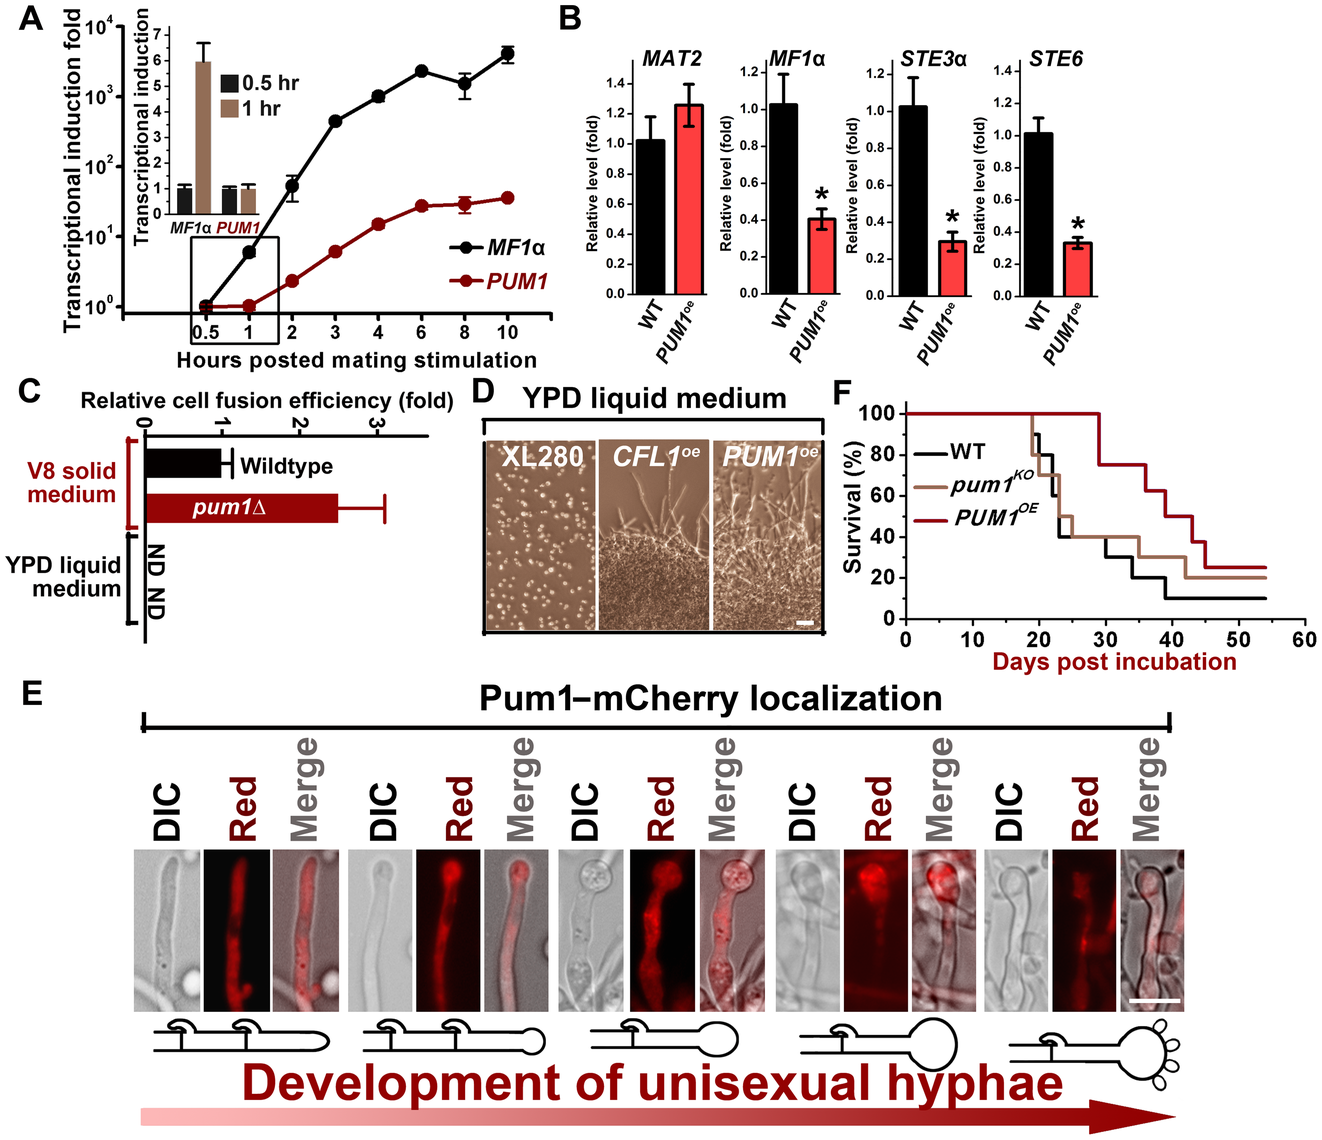 Pum1 controls filamentation but not early mating processes.